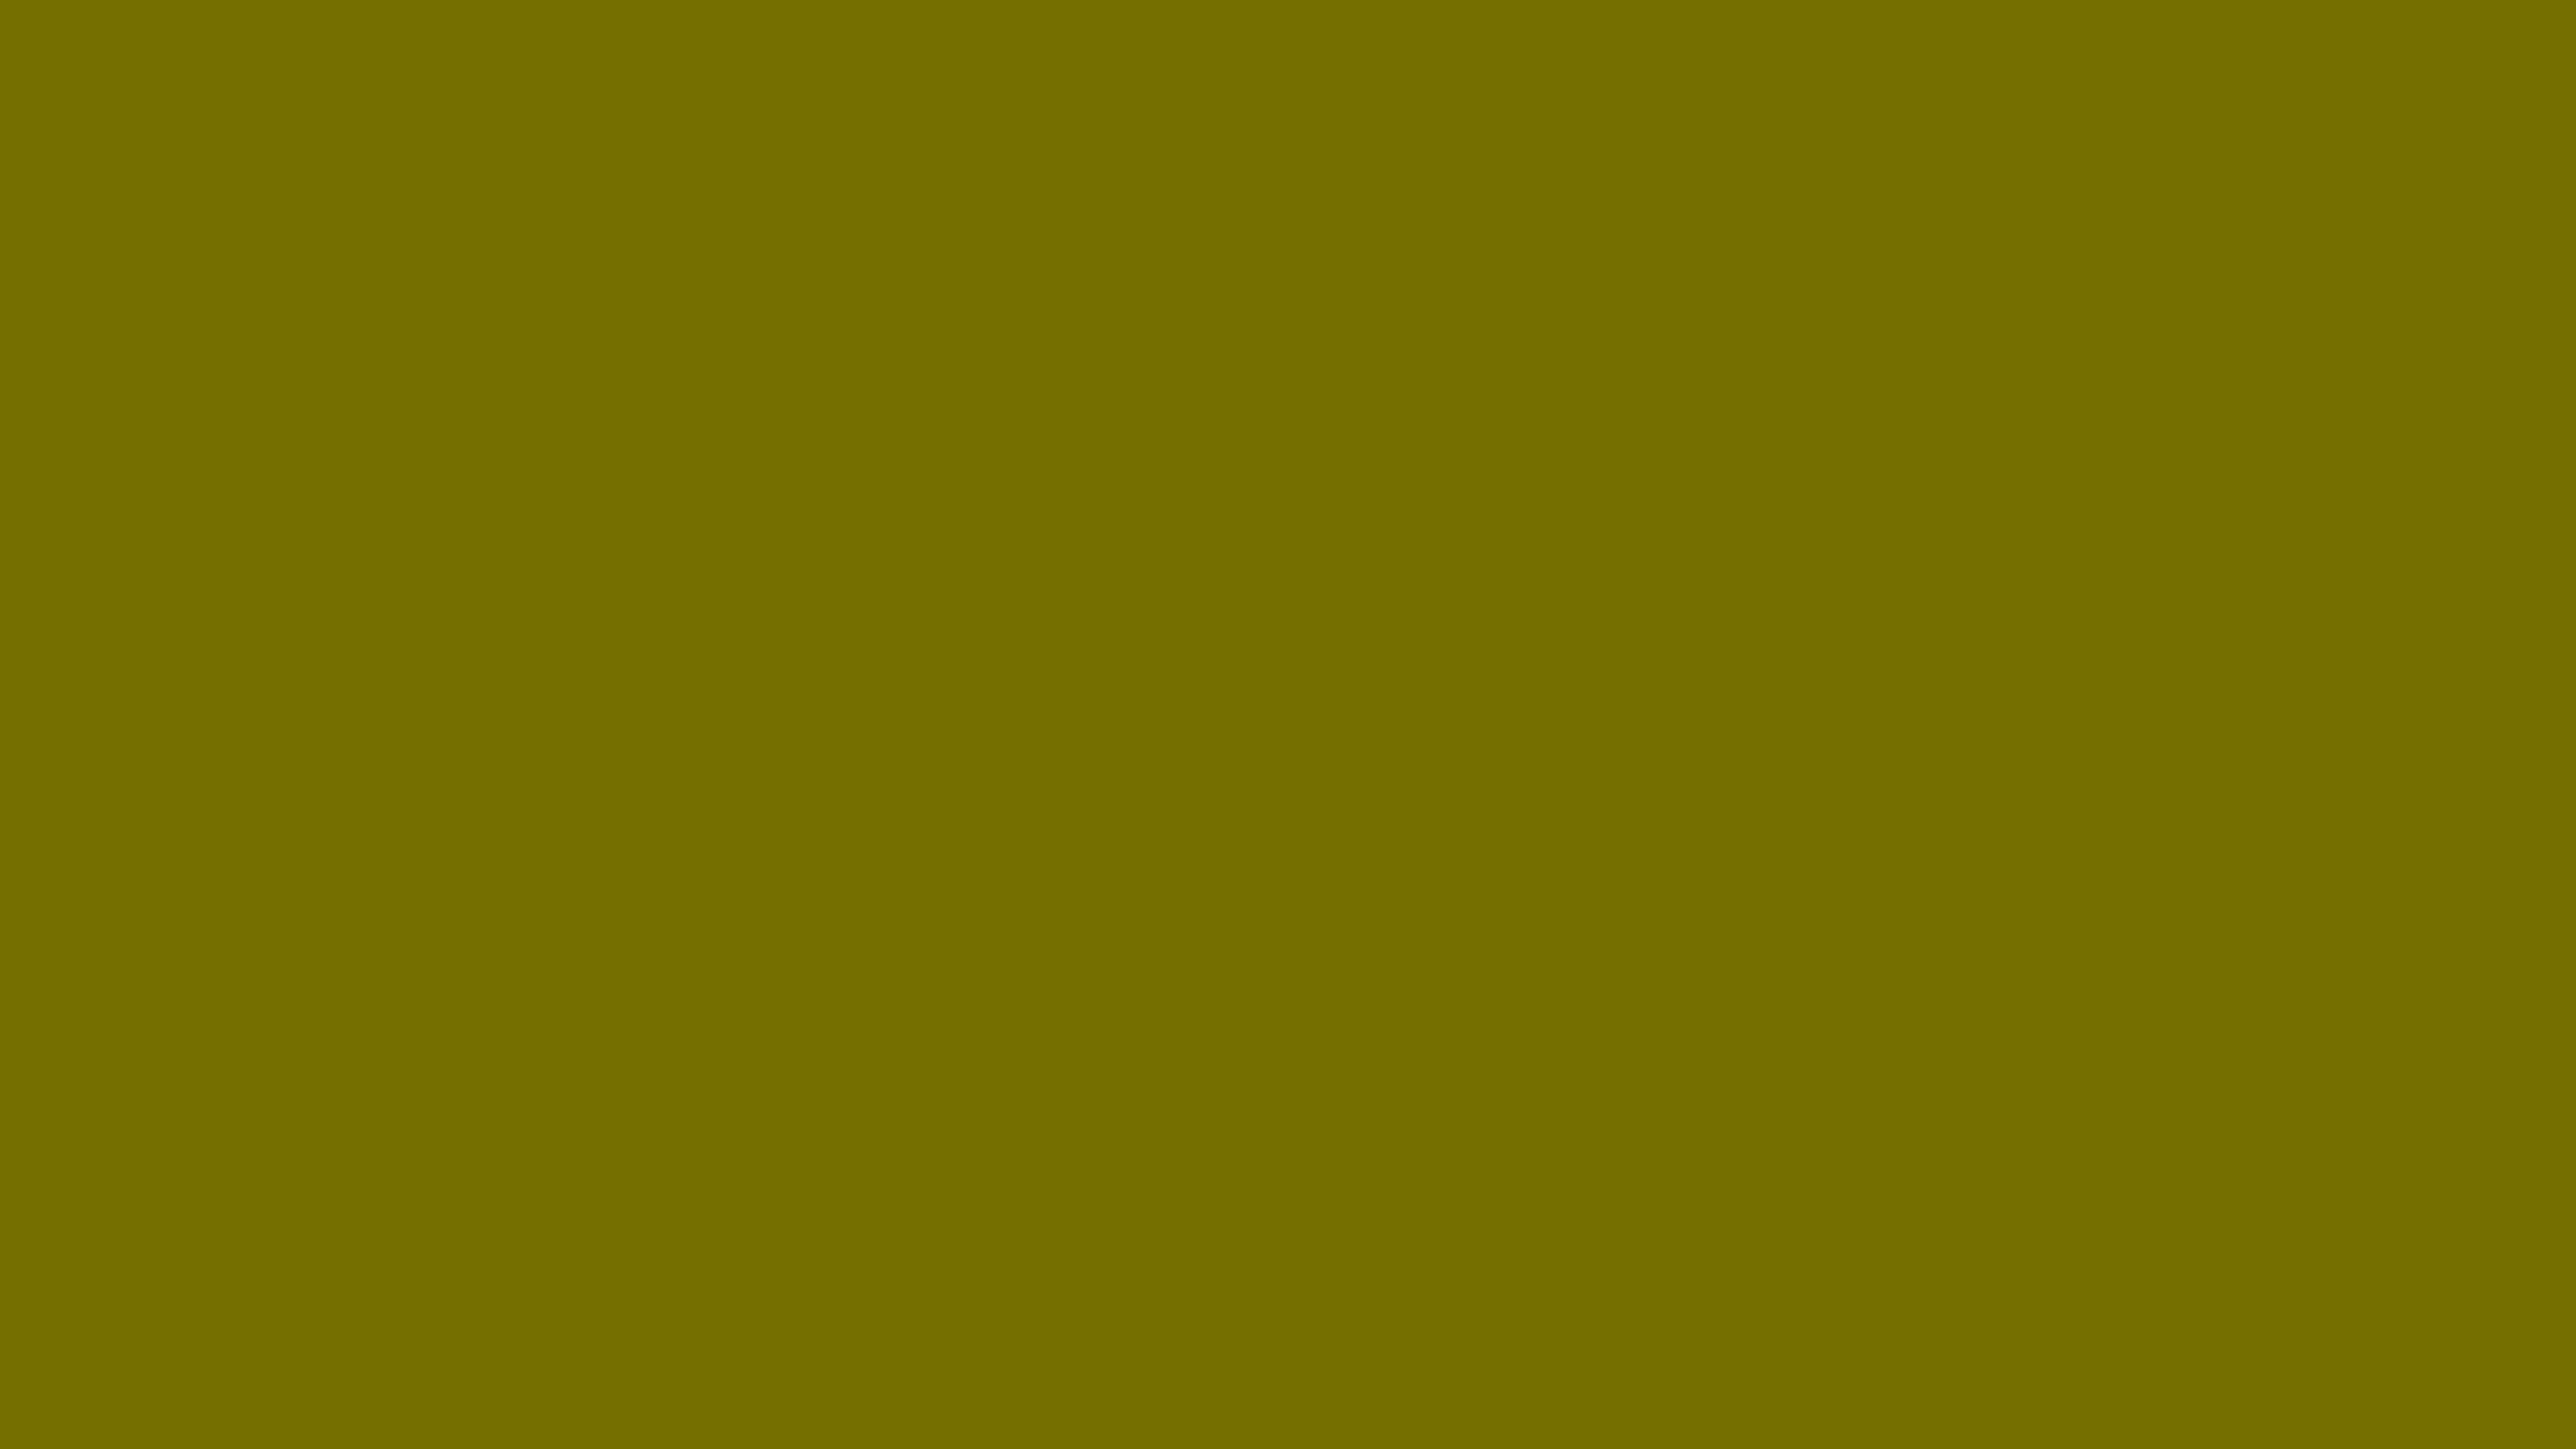 3840x2160 Bronze Yellow Solid Color Background